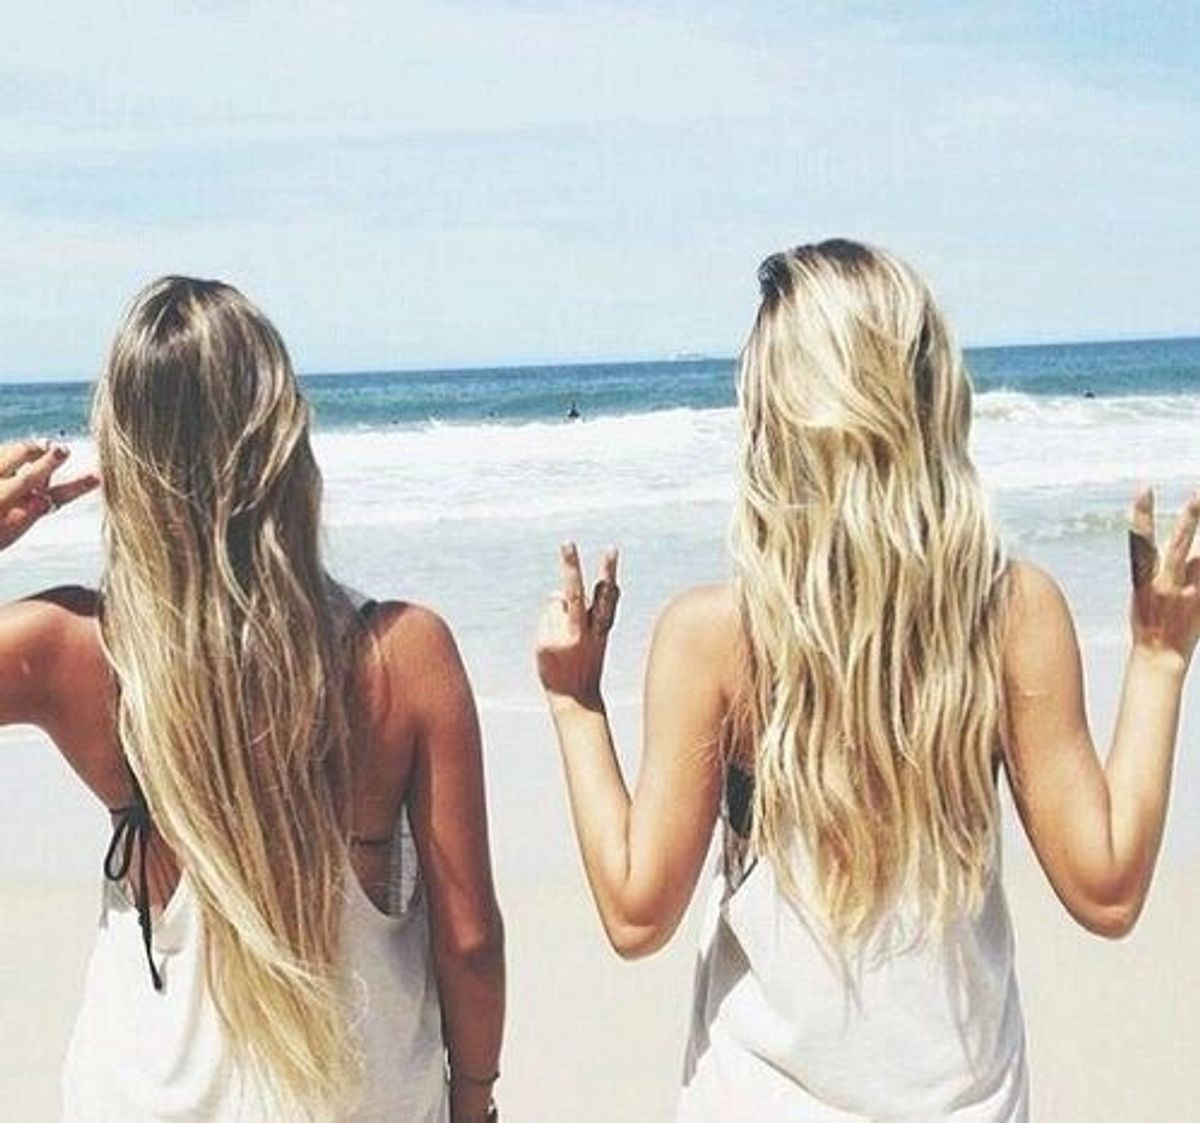 16 Things Only Blonde Girls Can Relate To